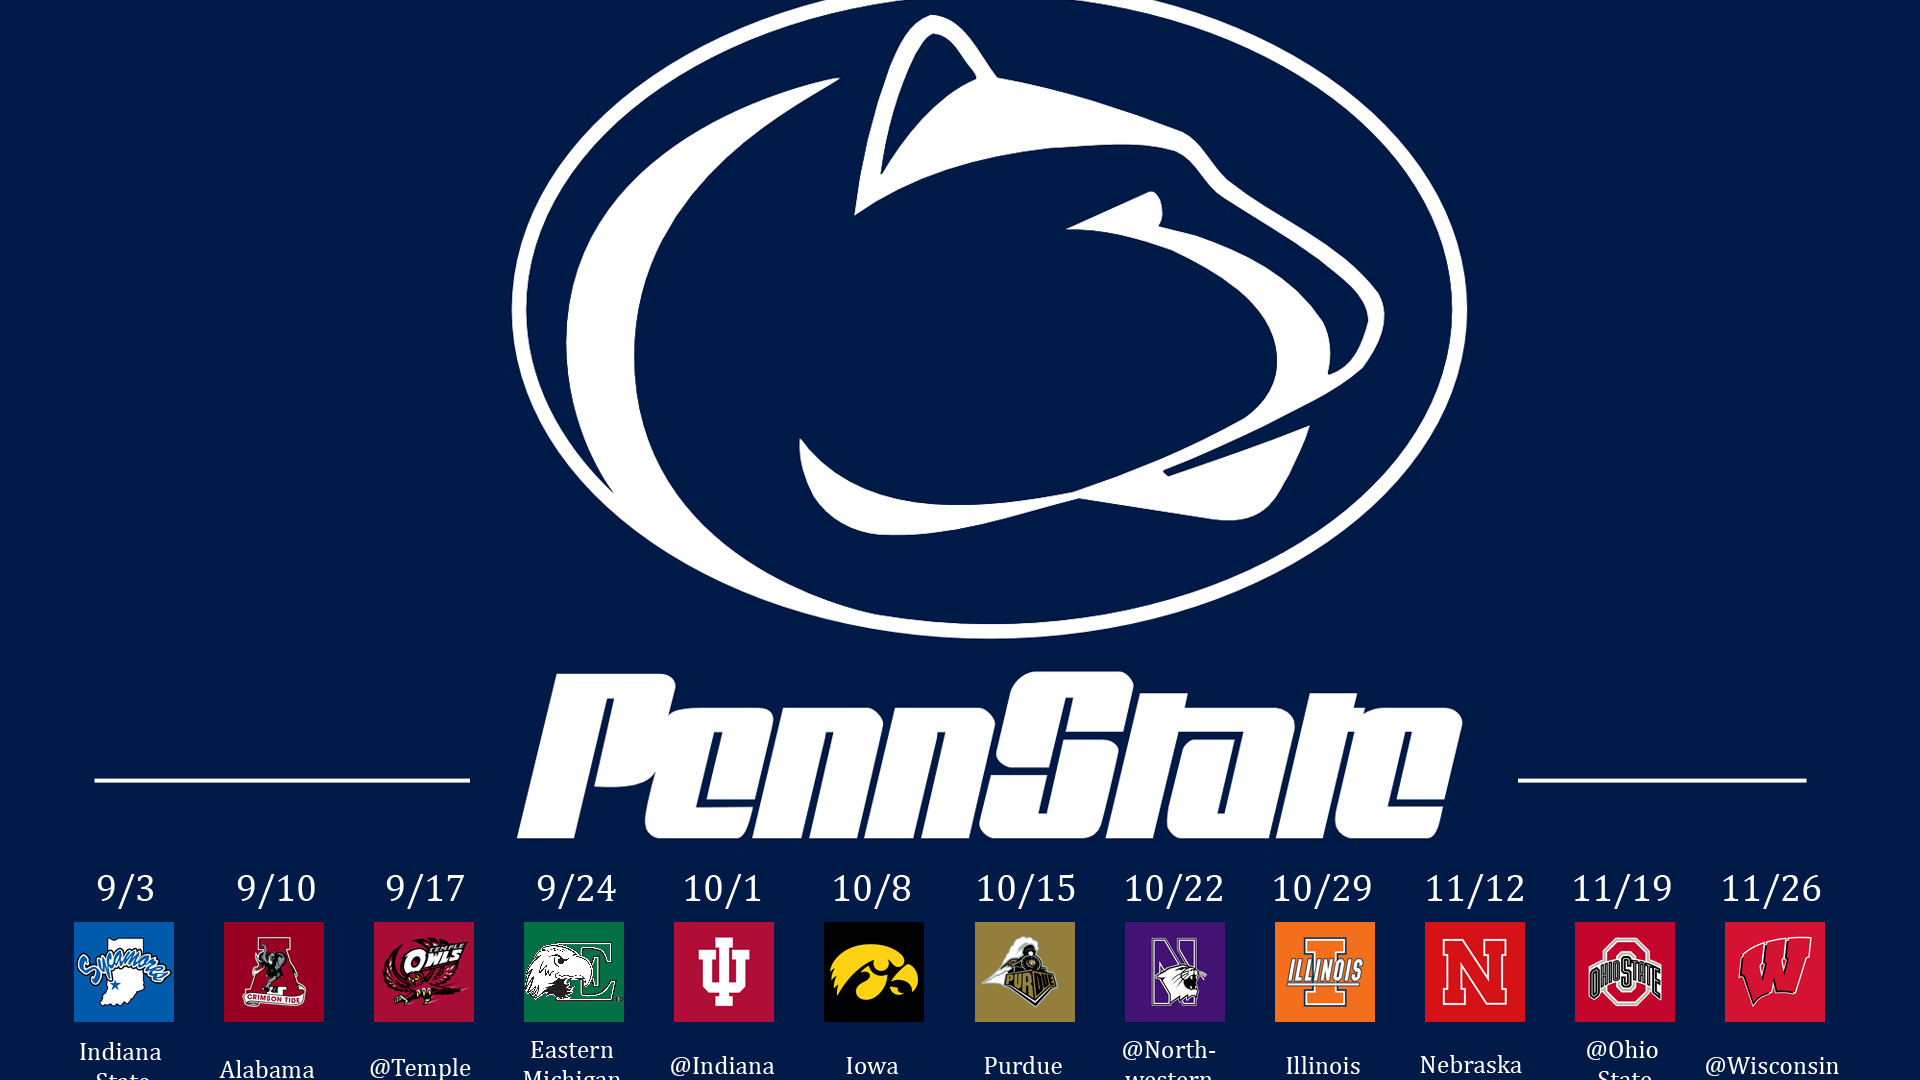 1920x1080 college football penn state